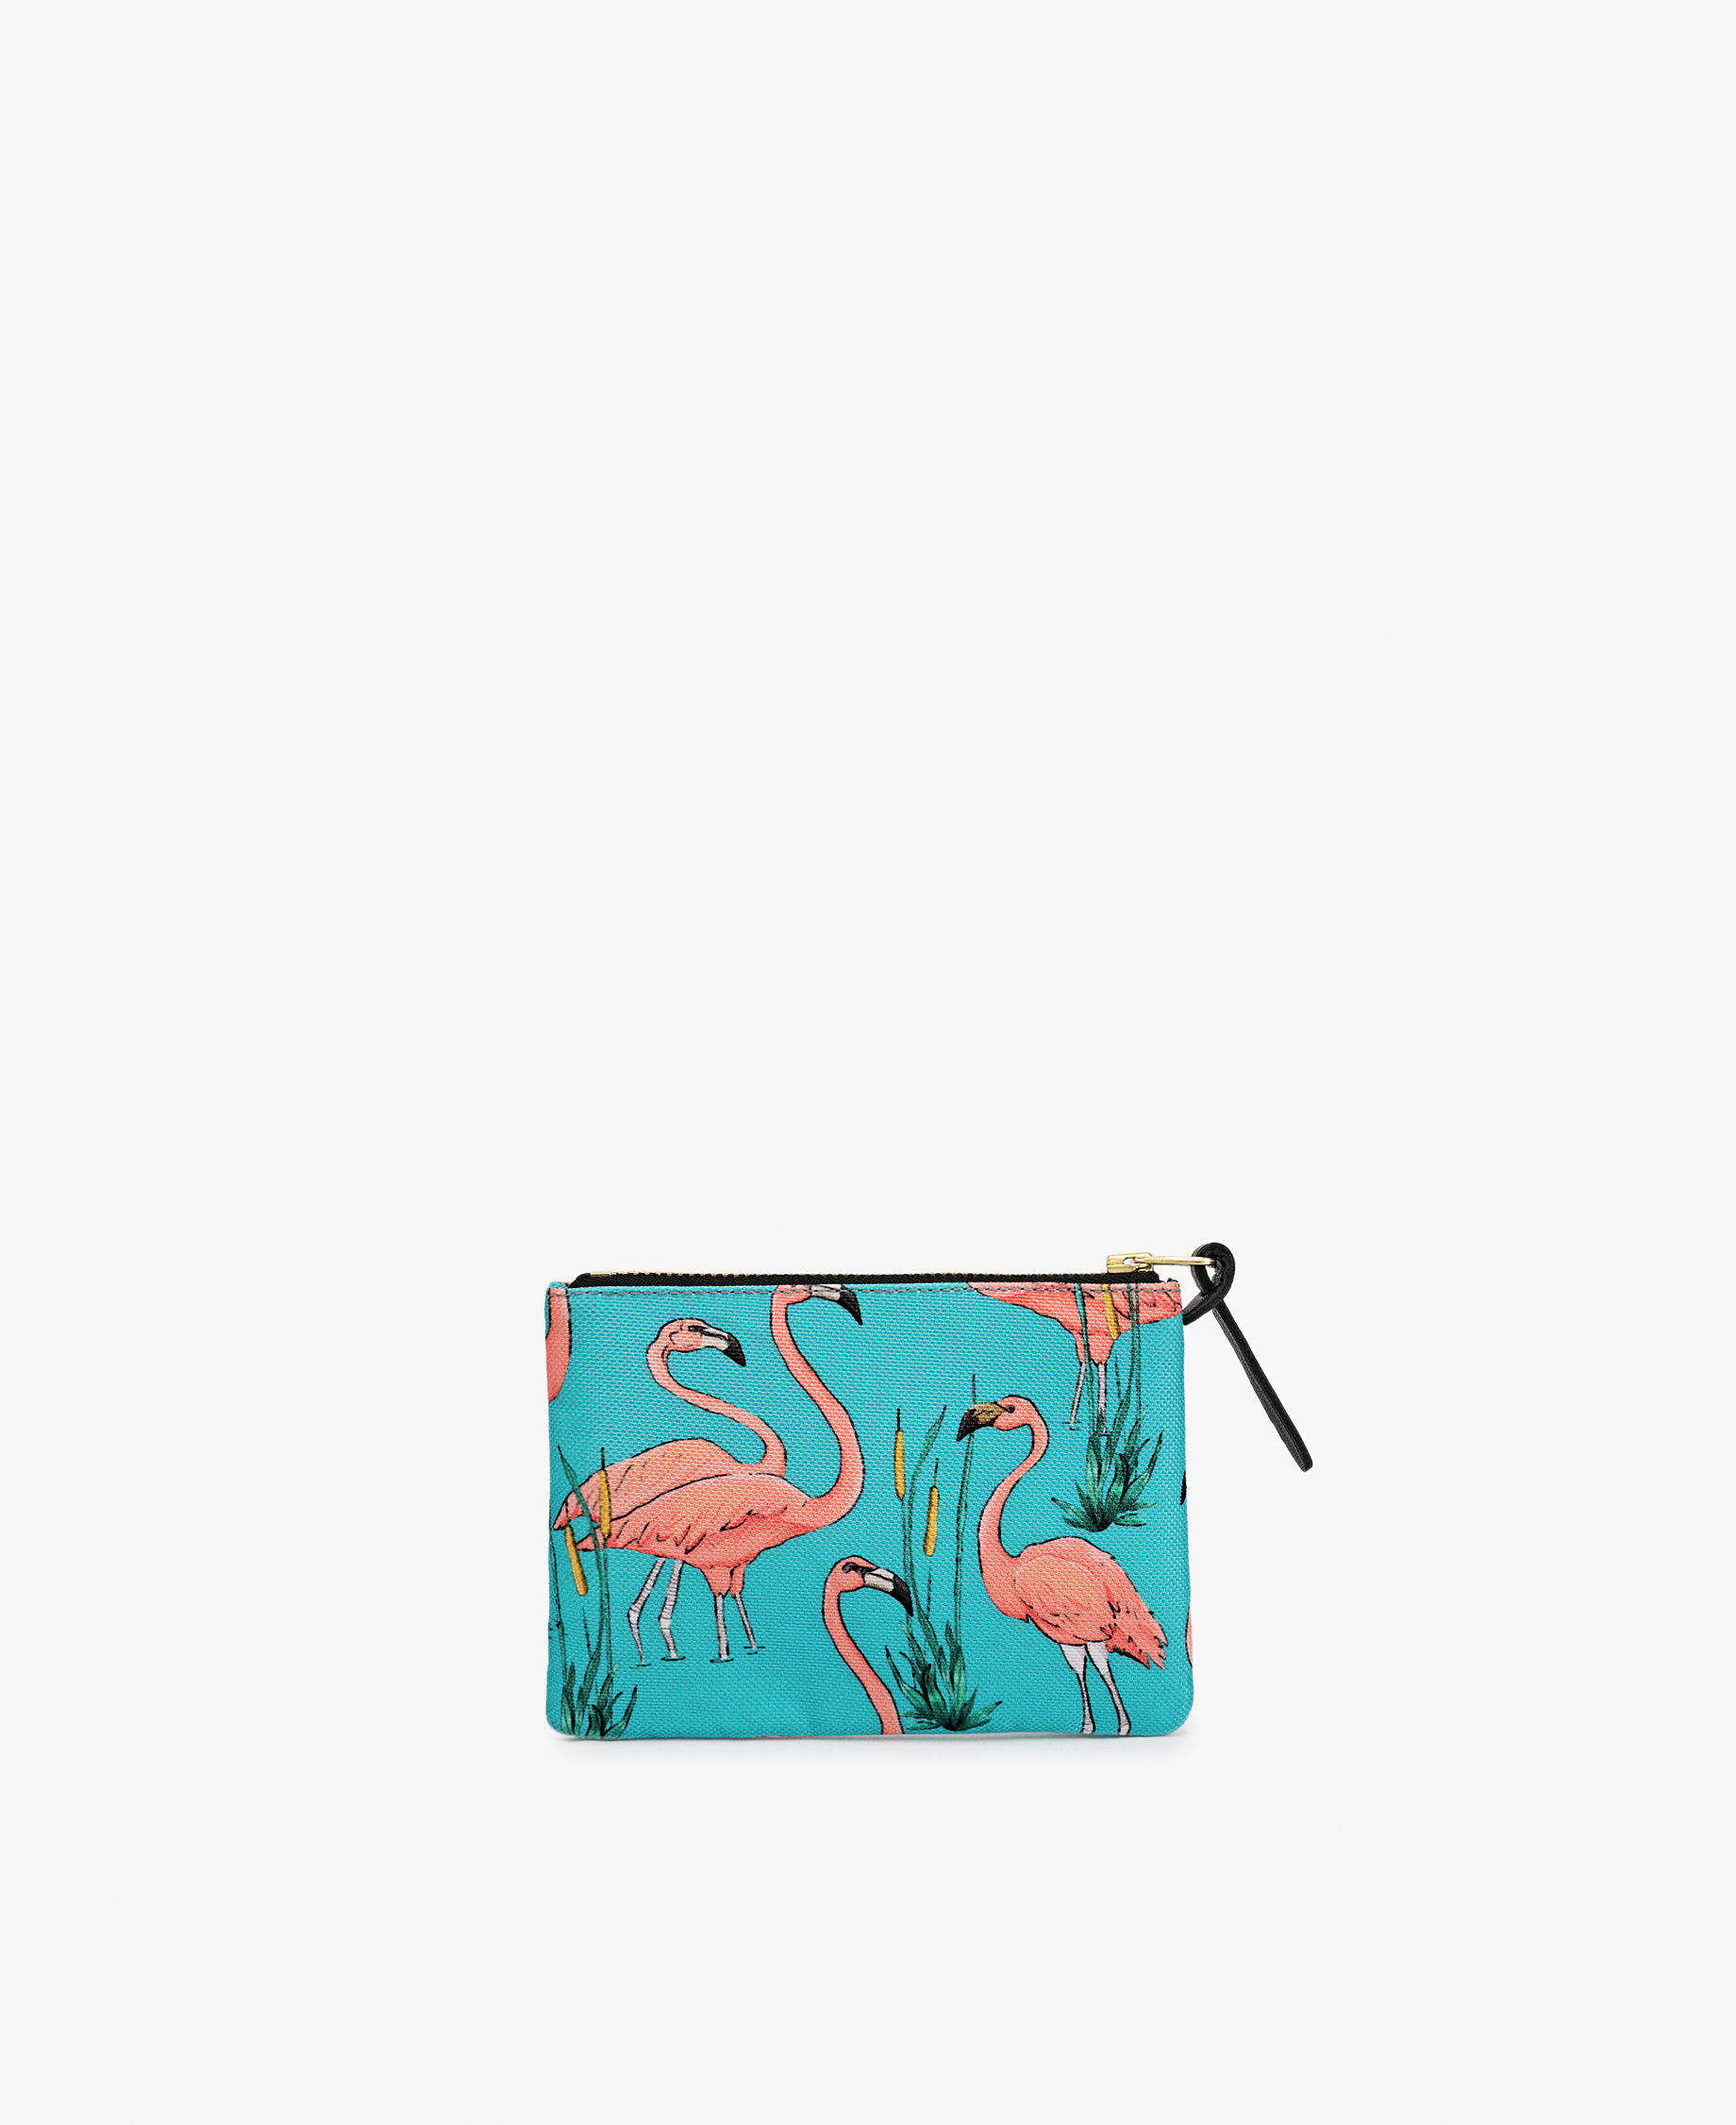 blue pouch bag with pink flamingos